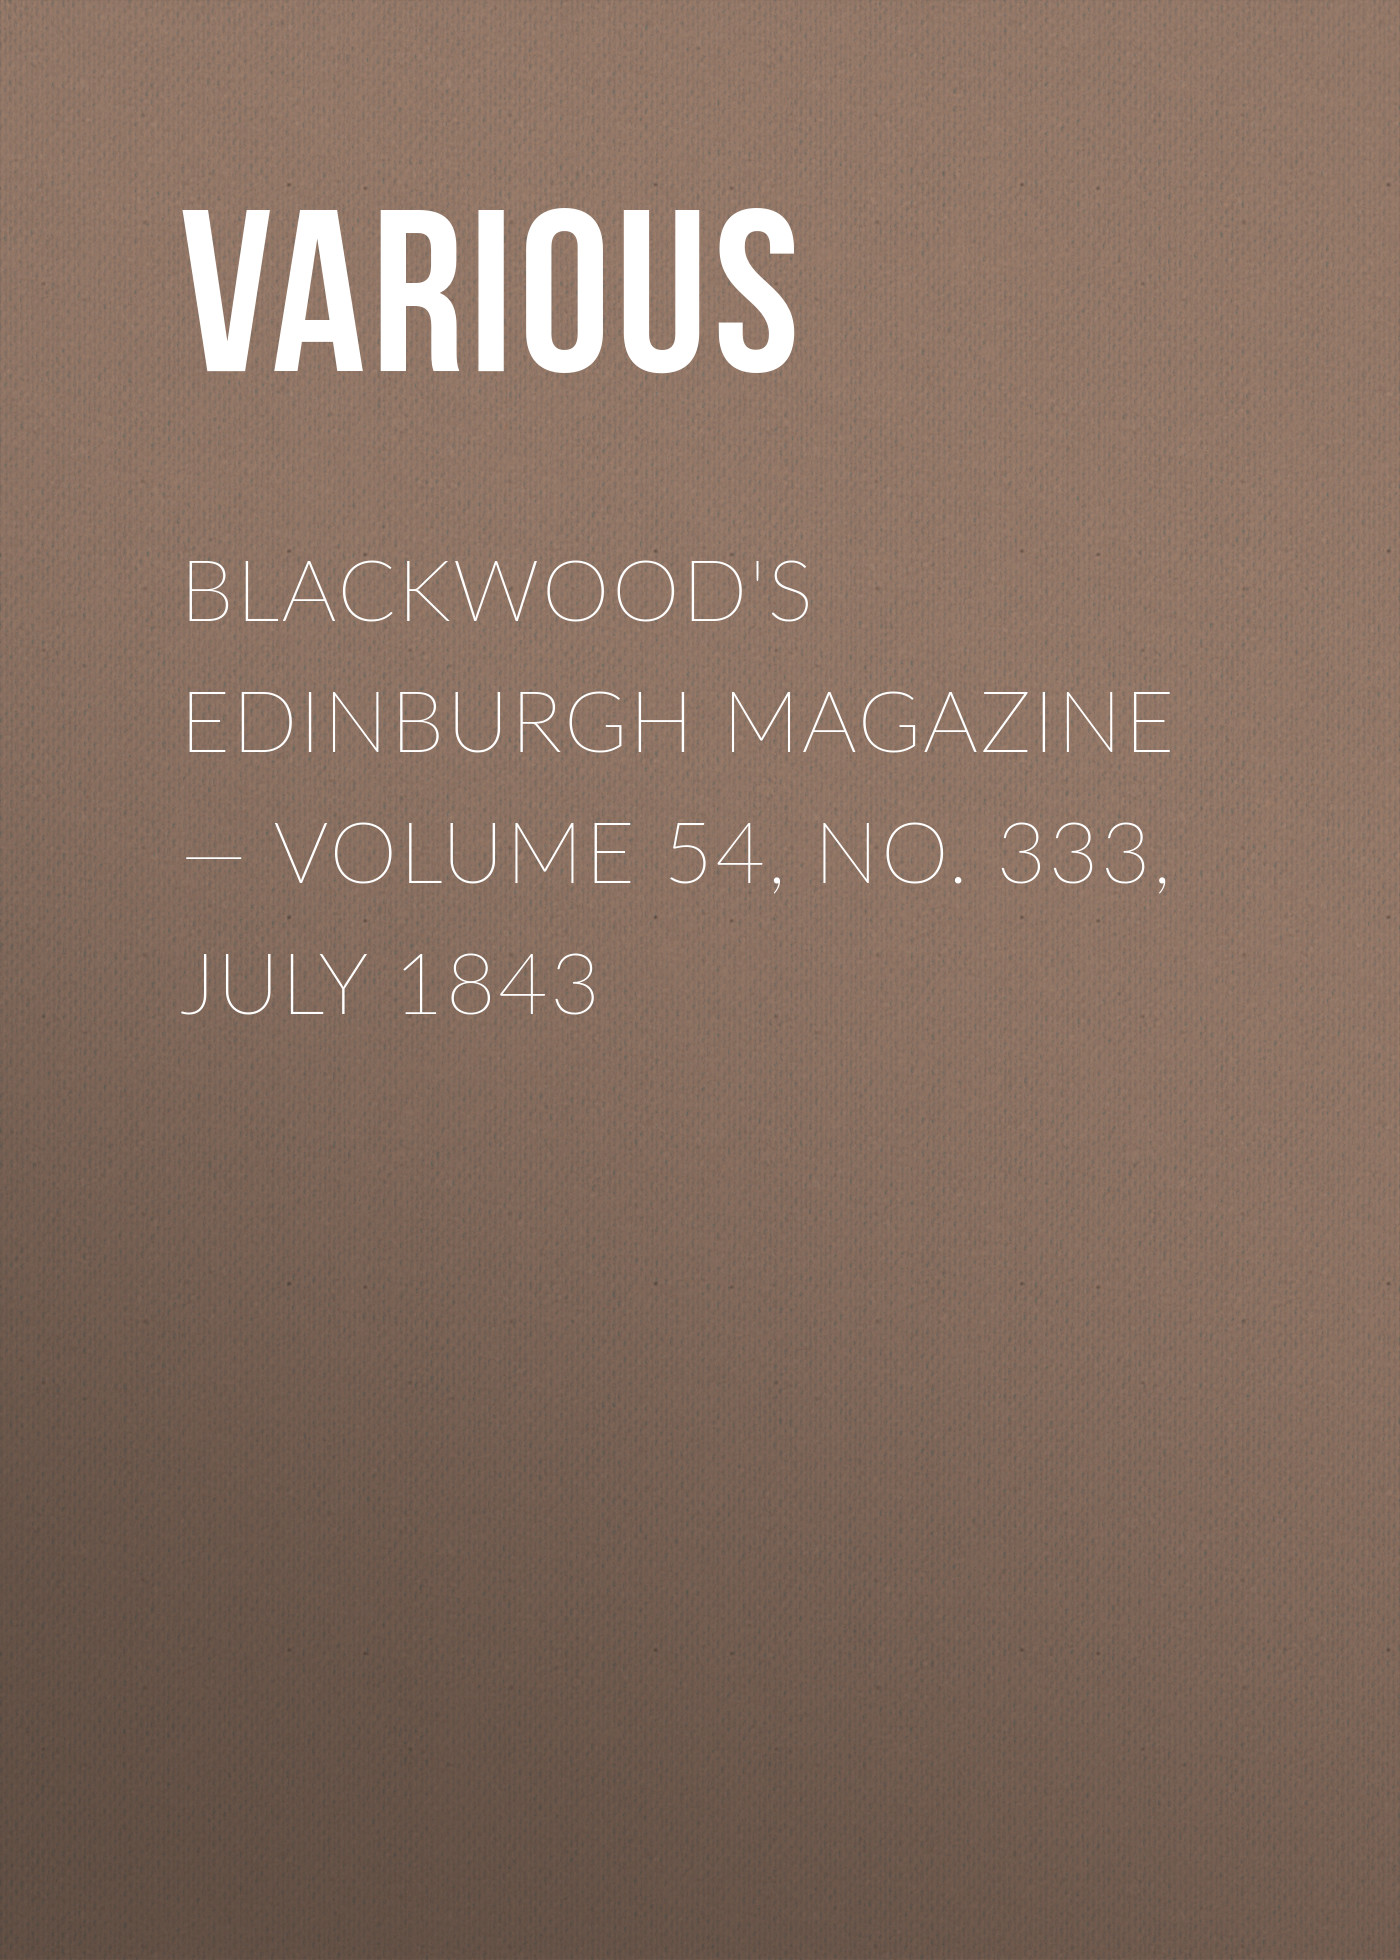 Blackwood's Edinburgh Magazine — Volume 54, No. 333, July 1843